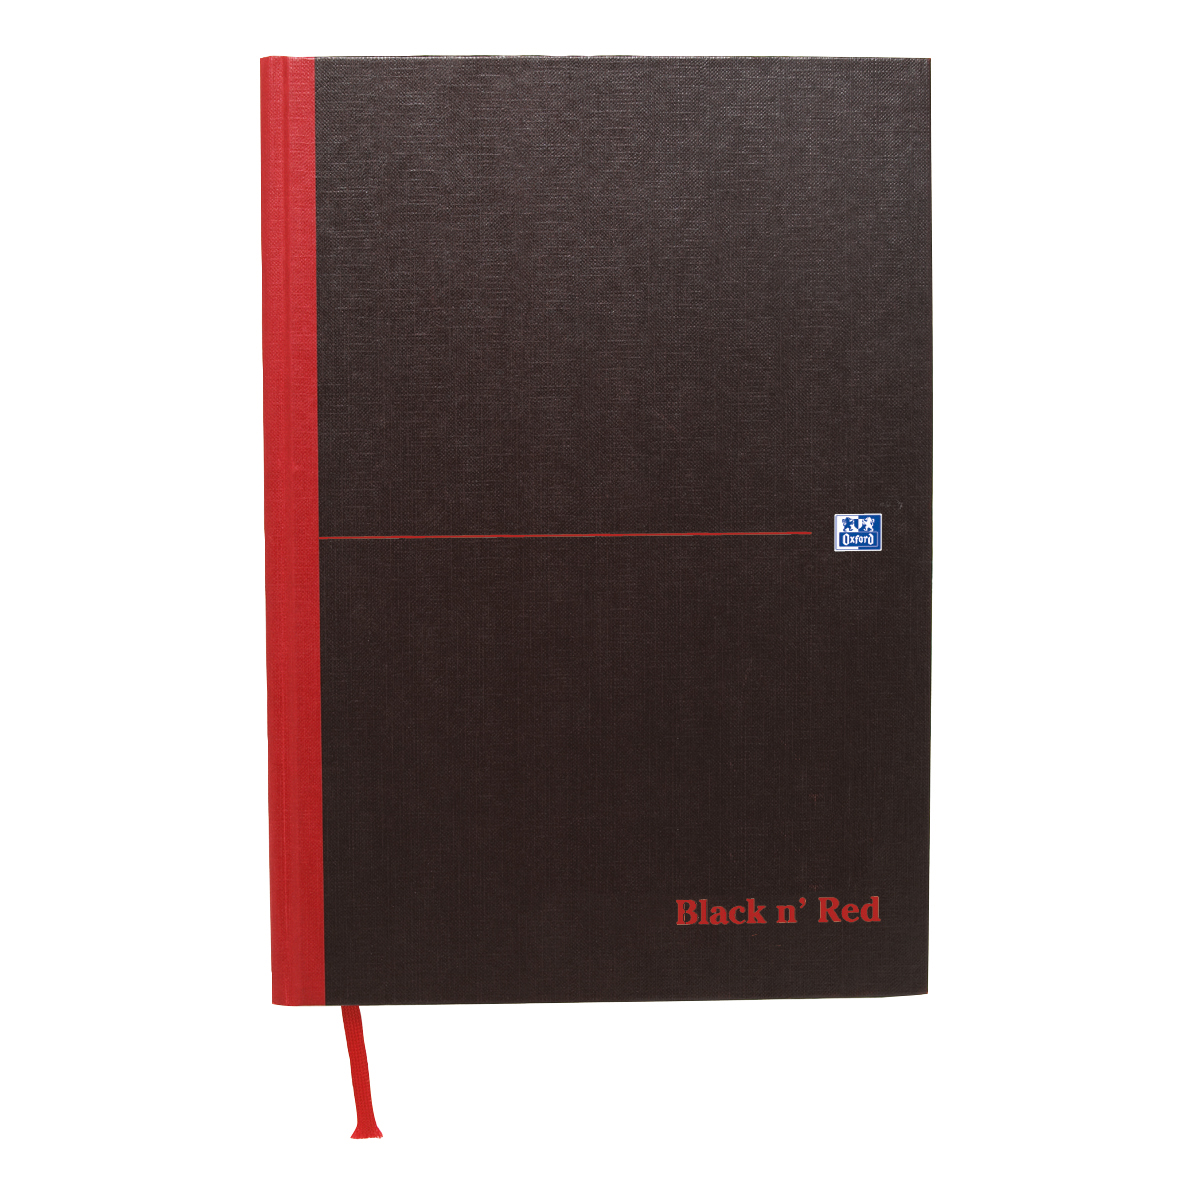 Notebooks Black n Red Notebook Casebound 90gsm Plain 192pg A4 Ref 100080489 Pack 5